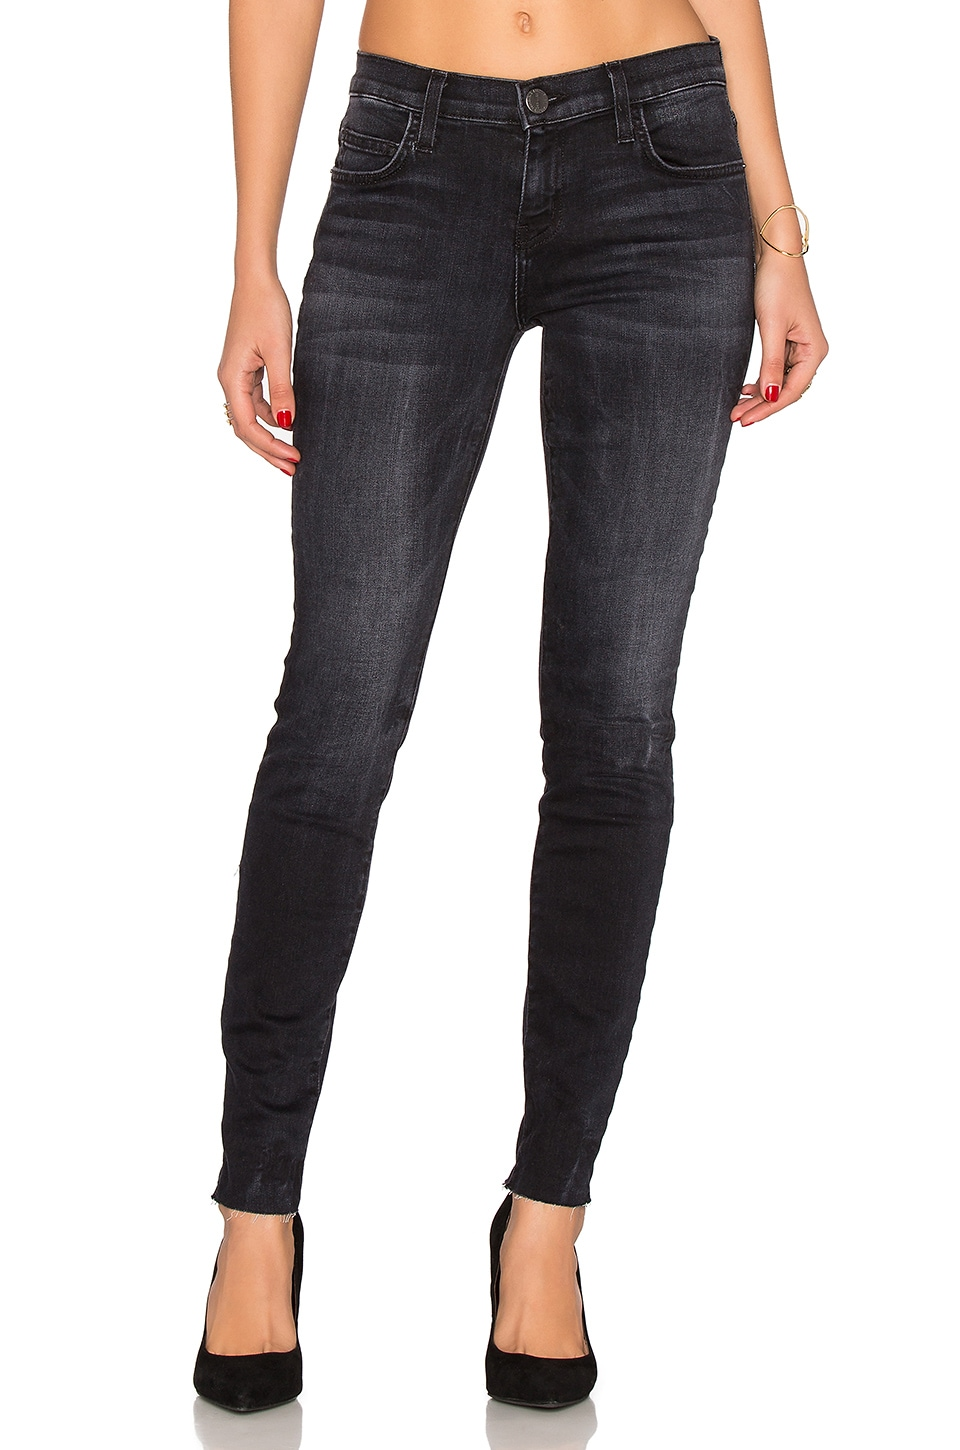 The Unfinished Hem Ankle Skinny by Current/Elliott